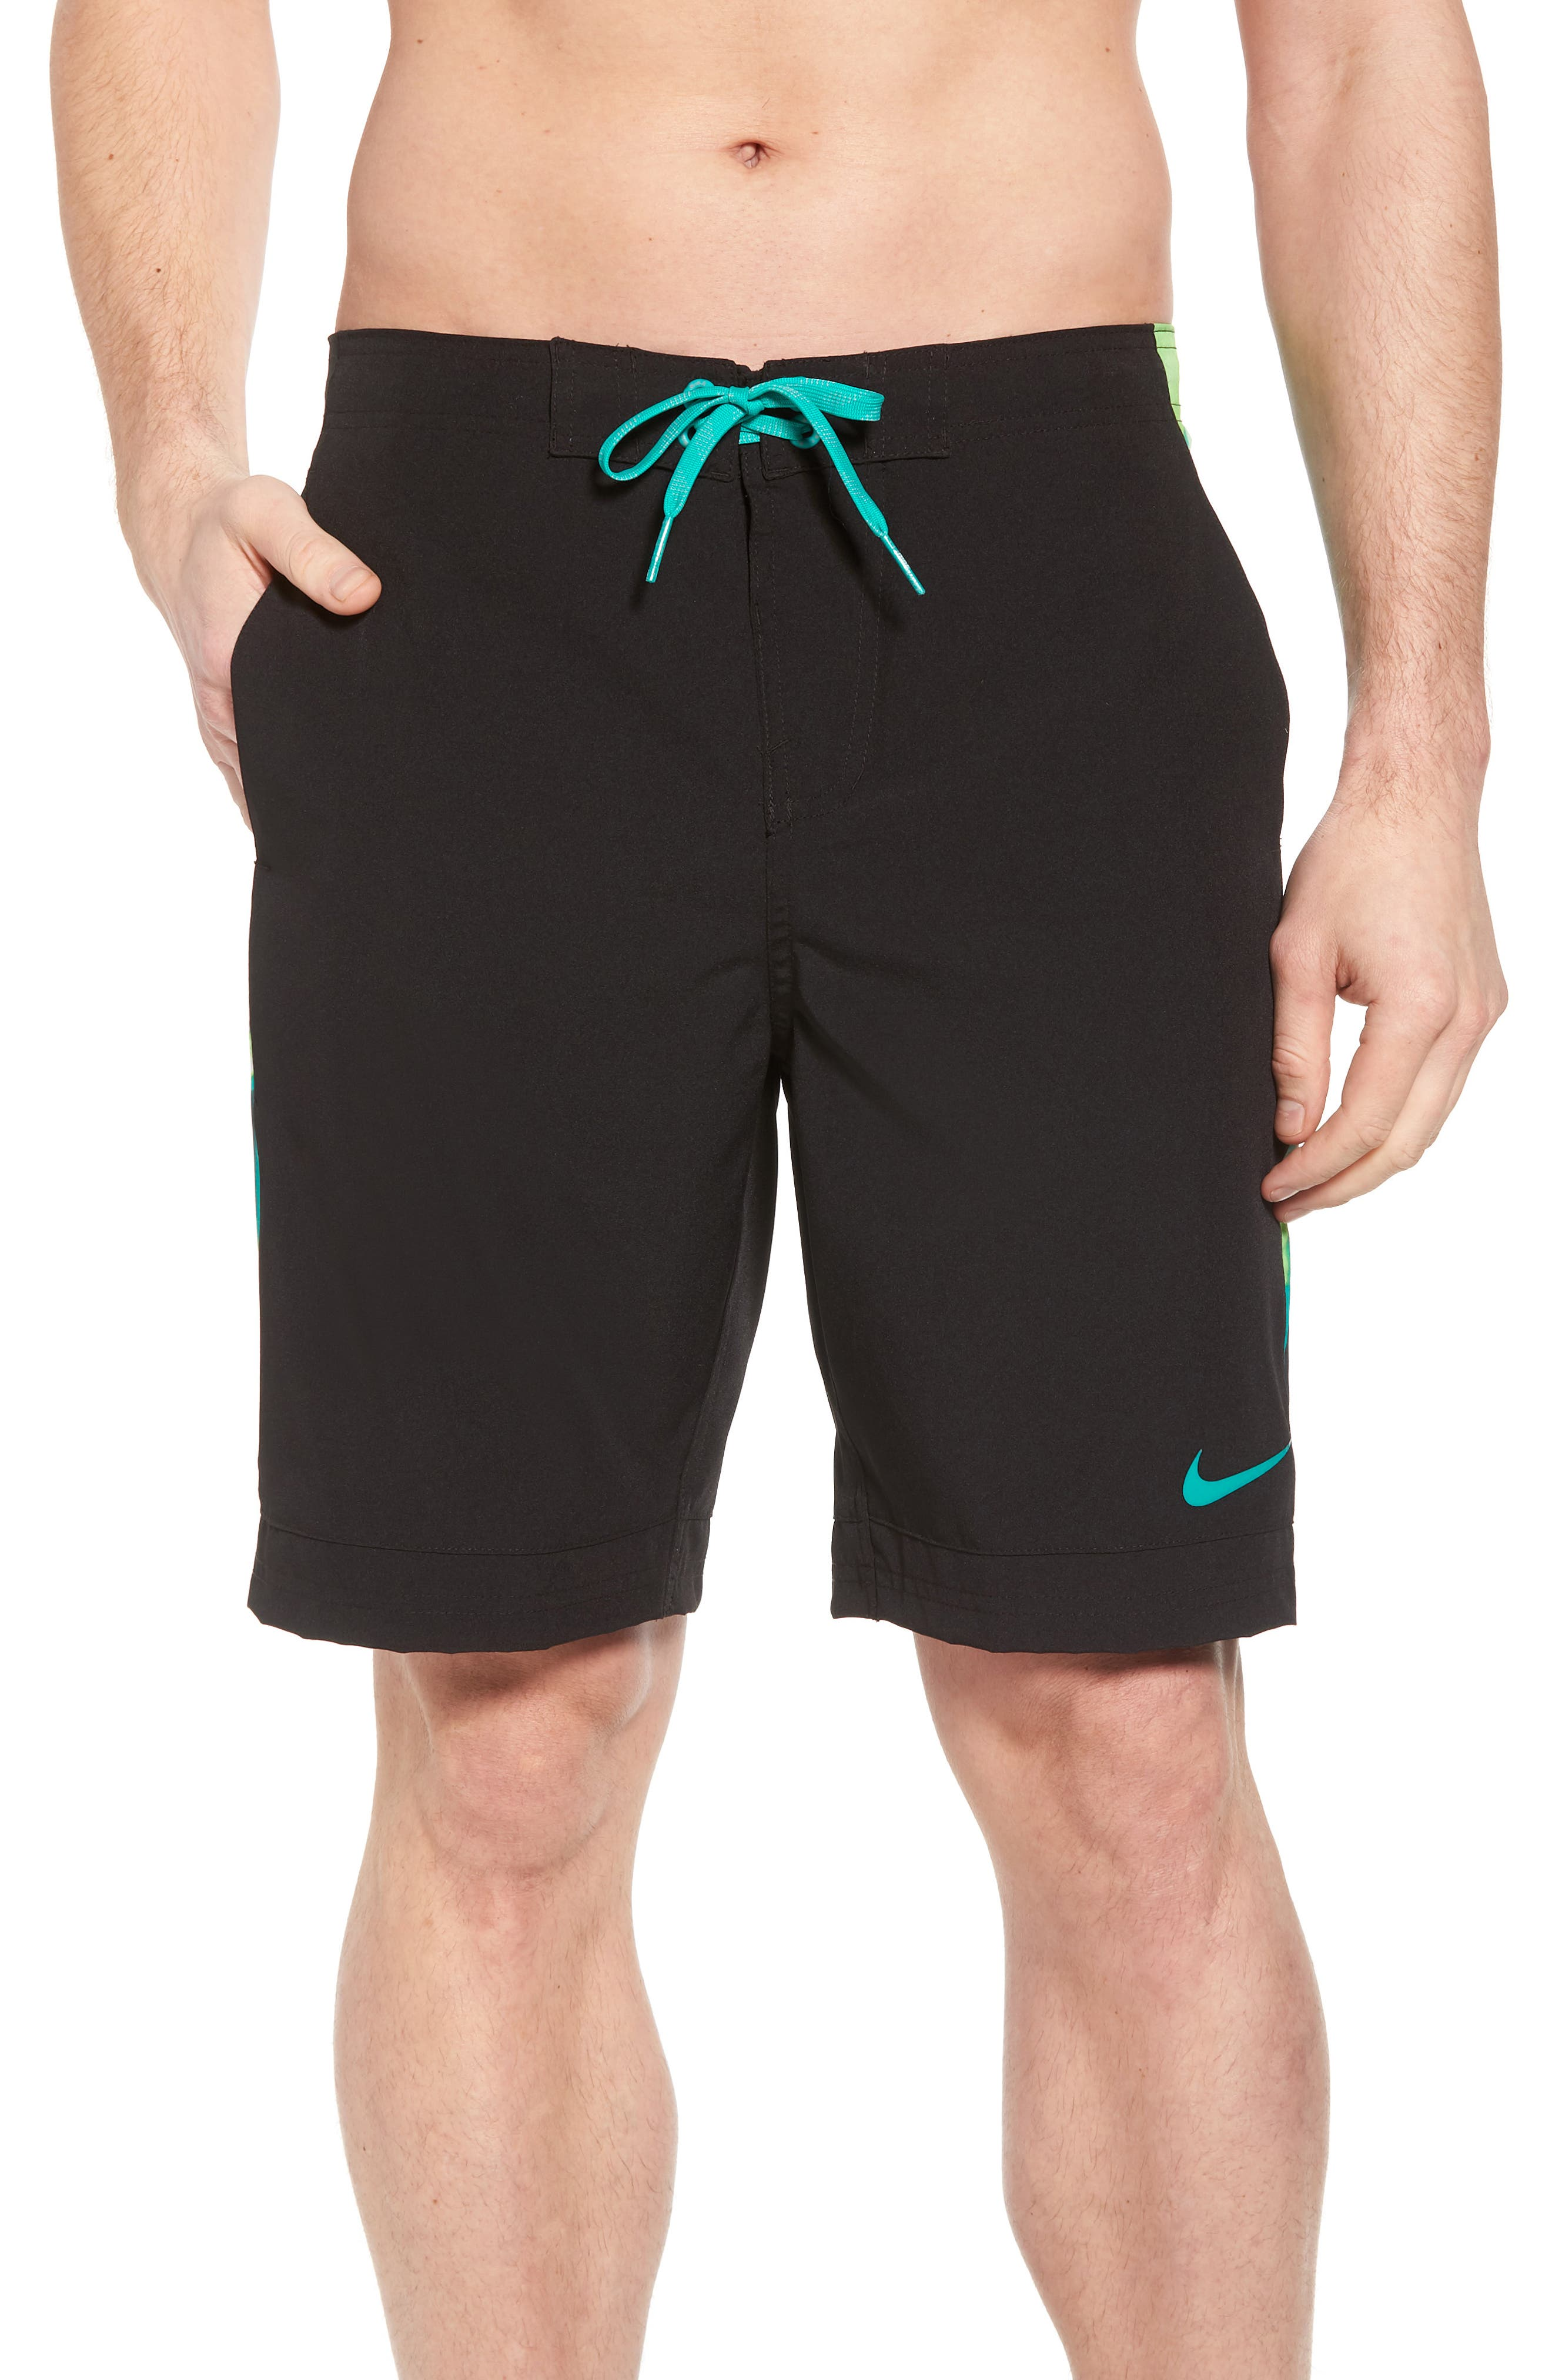 Racer Board Shorts,                         Main,                         color, Black